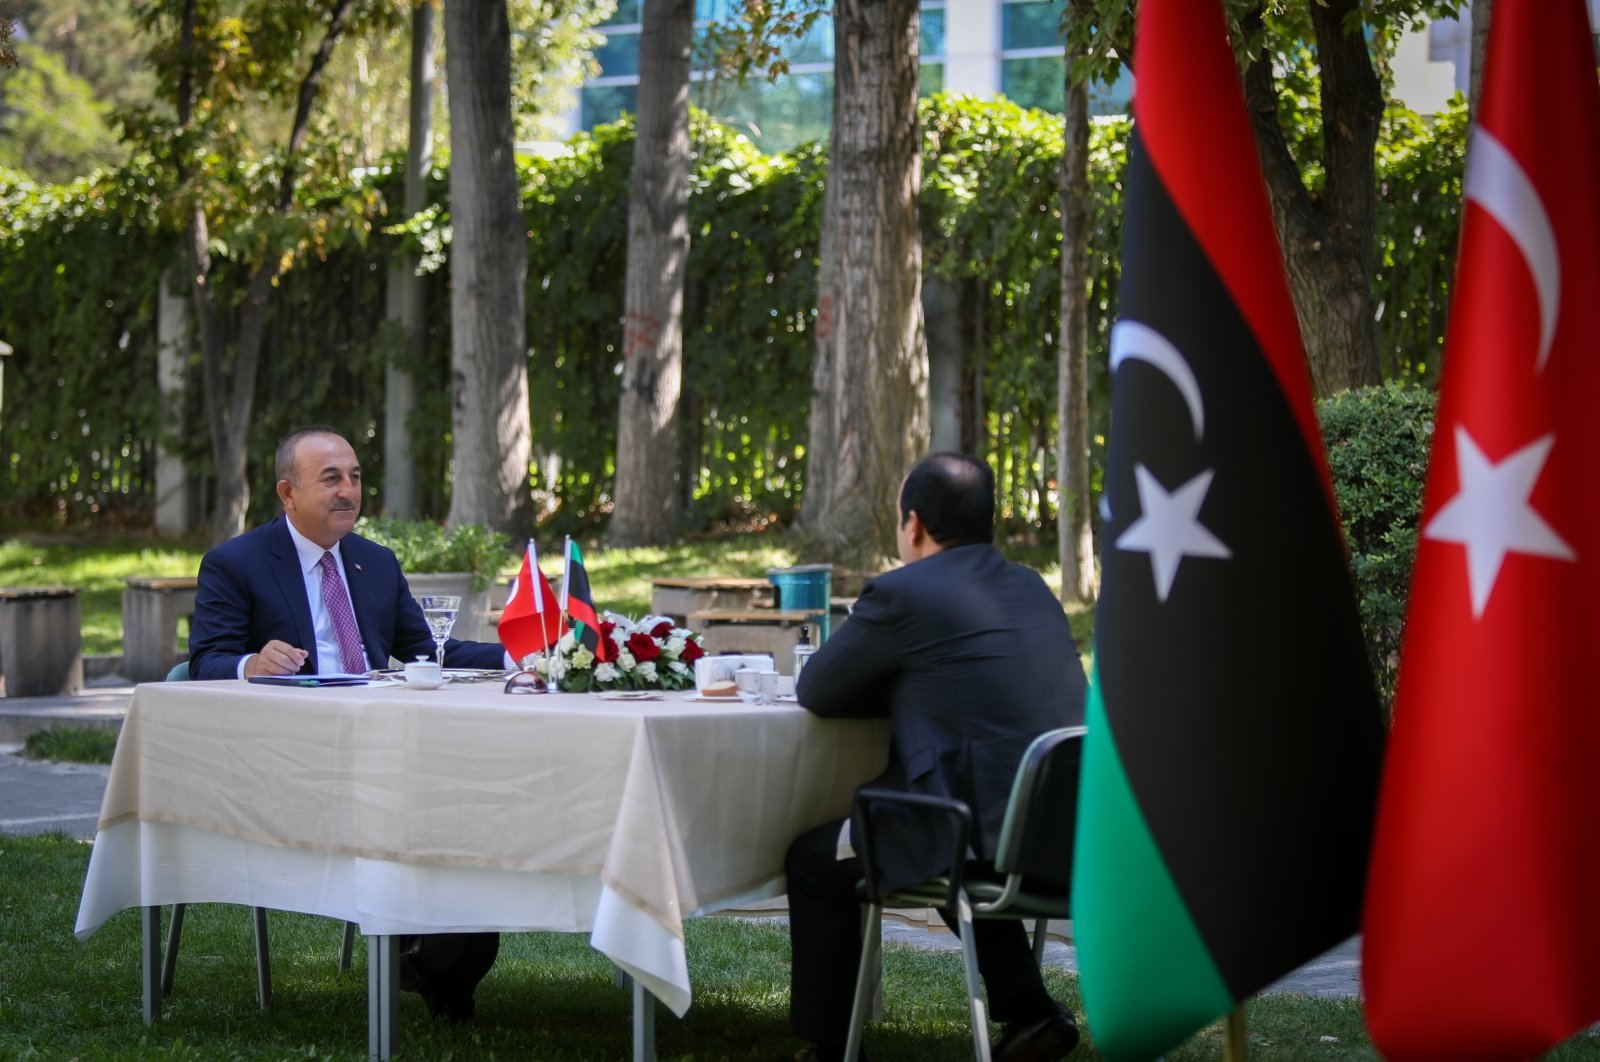 Turkey's Foreign Minister Mevlüt Çavuşoğlu meets with Ahmed Maiteeq, the vice president of the Presidential Council of Libya's Government of National Accord (GNA), in the capital Ankara, Turkey, Sept. 15, 2020 (AA Photo)